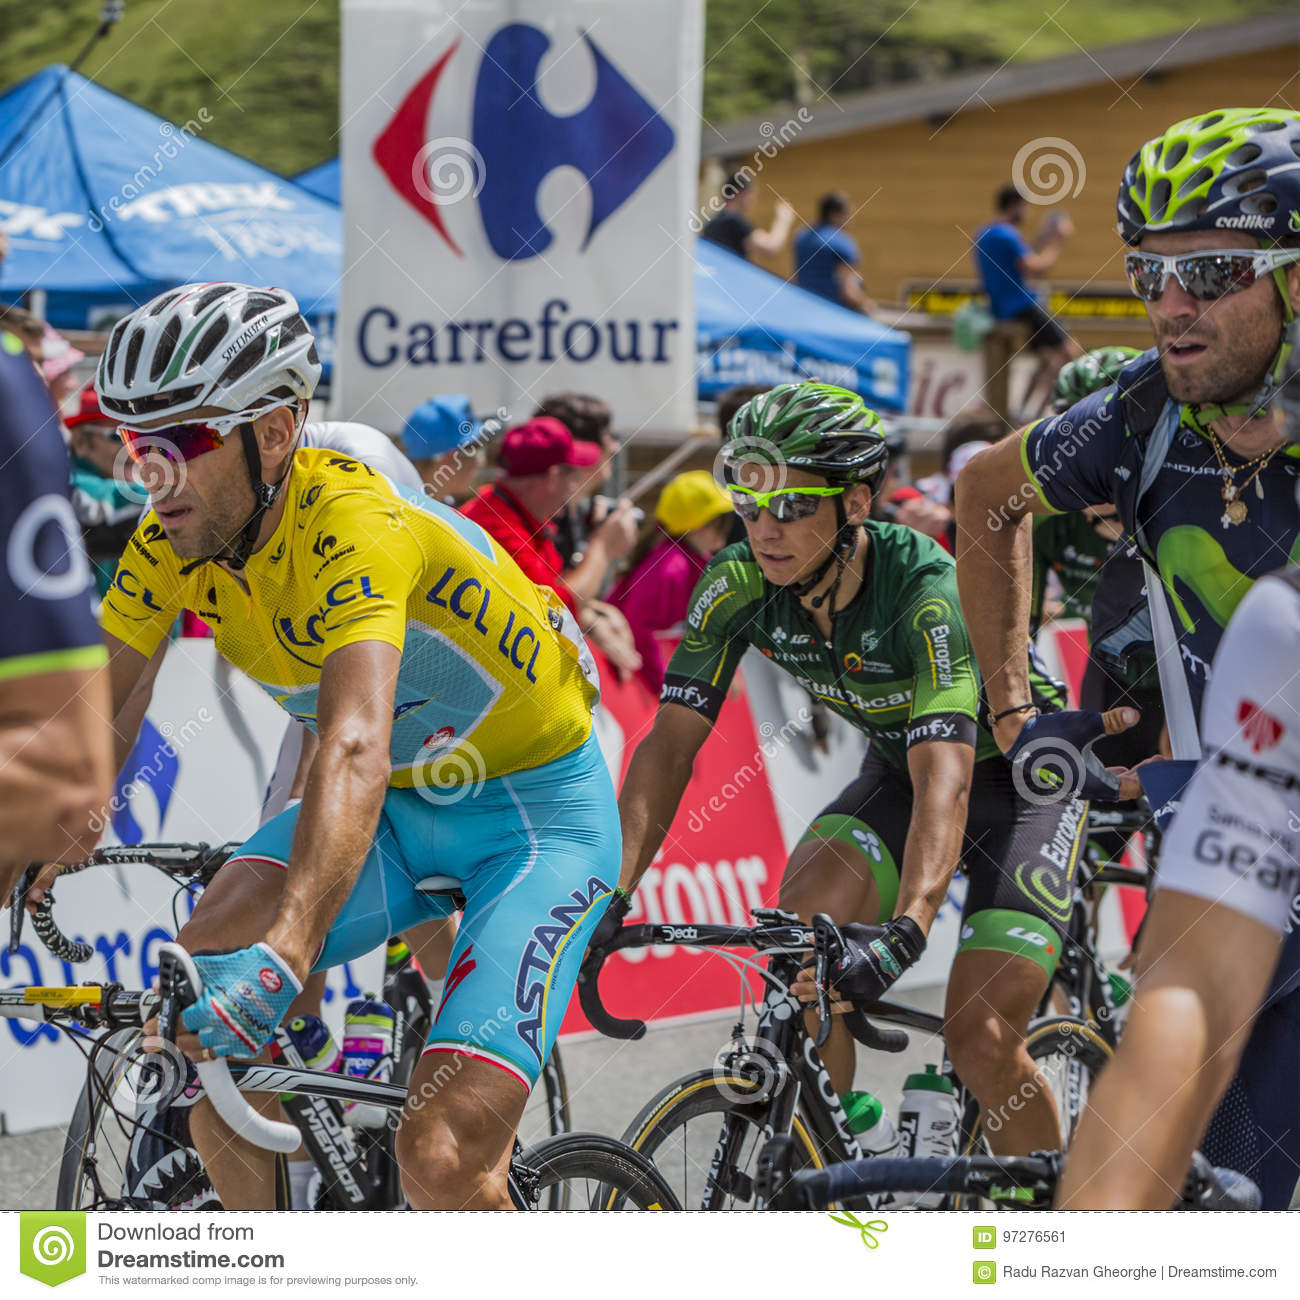 Vincenzo Nibali In Yellow Jersey - Tour De France 2014 Editorial Photo -  Image of bunch, racer: 97276561